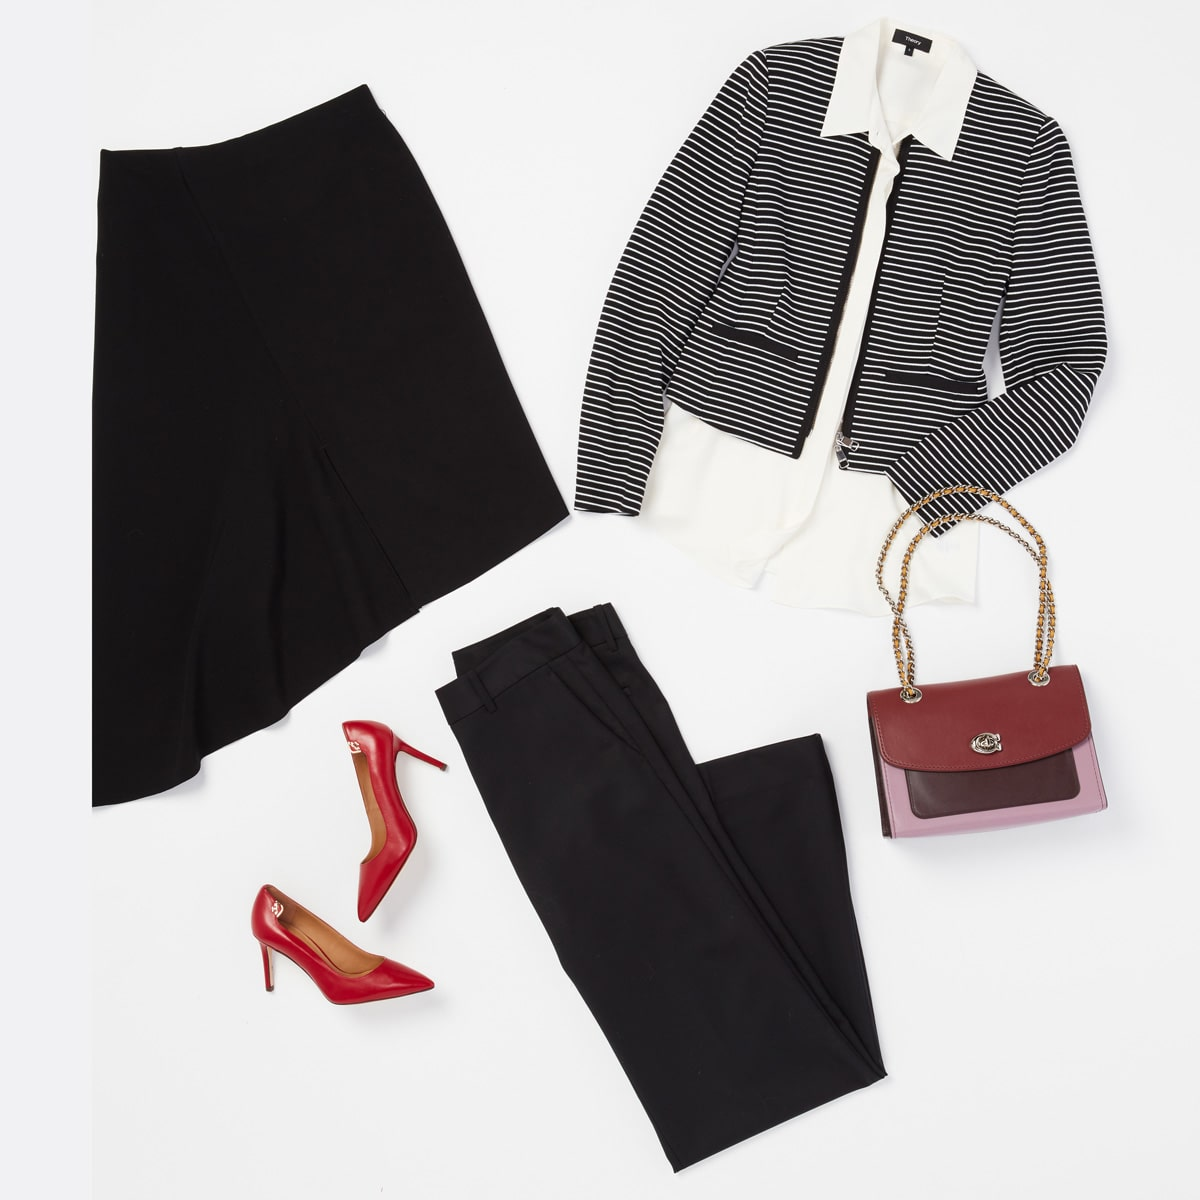 Add colorful accessories to a black blazer and slacks